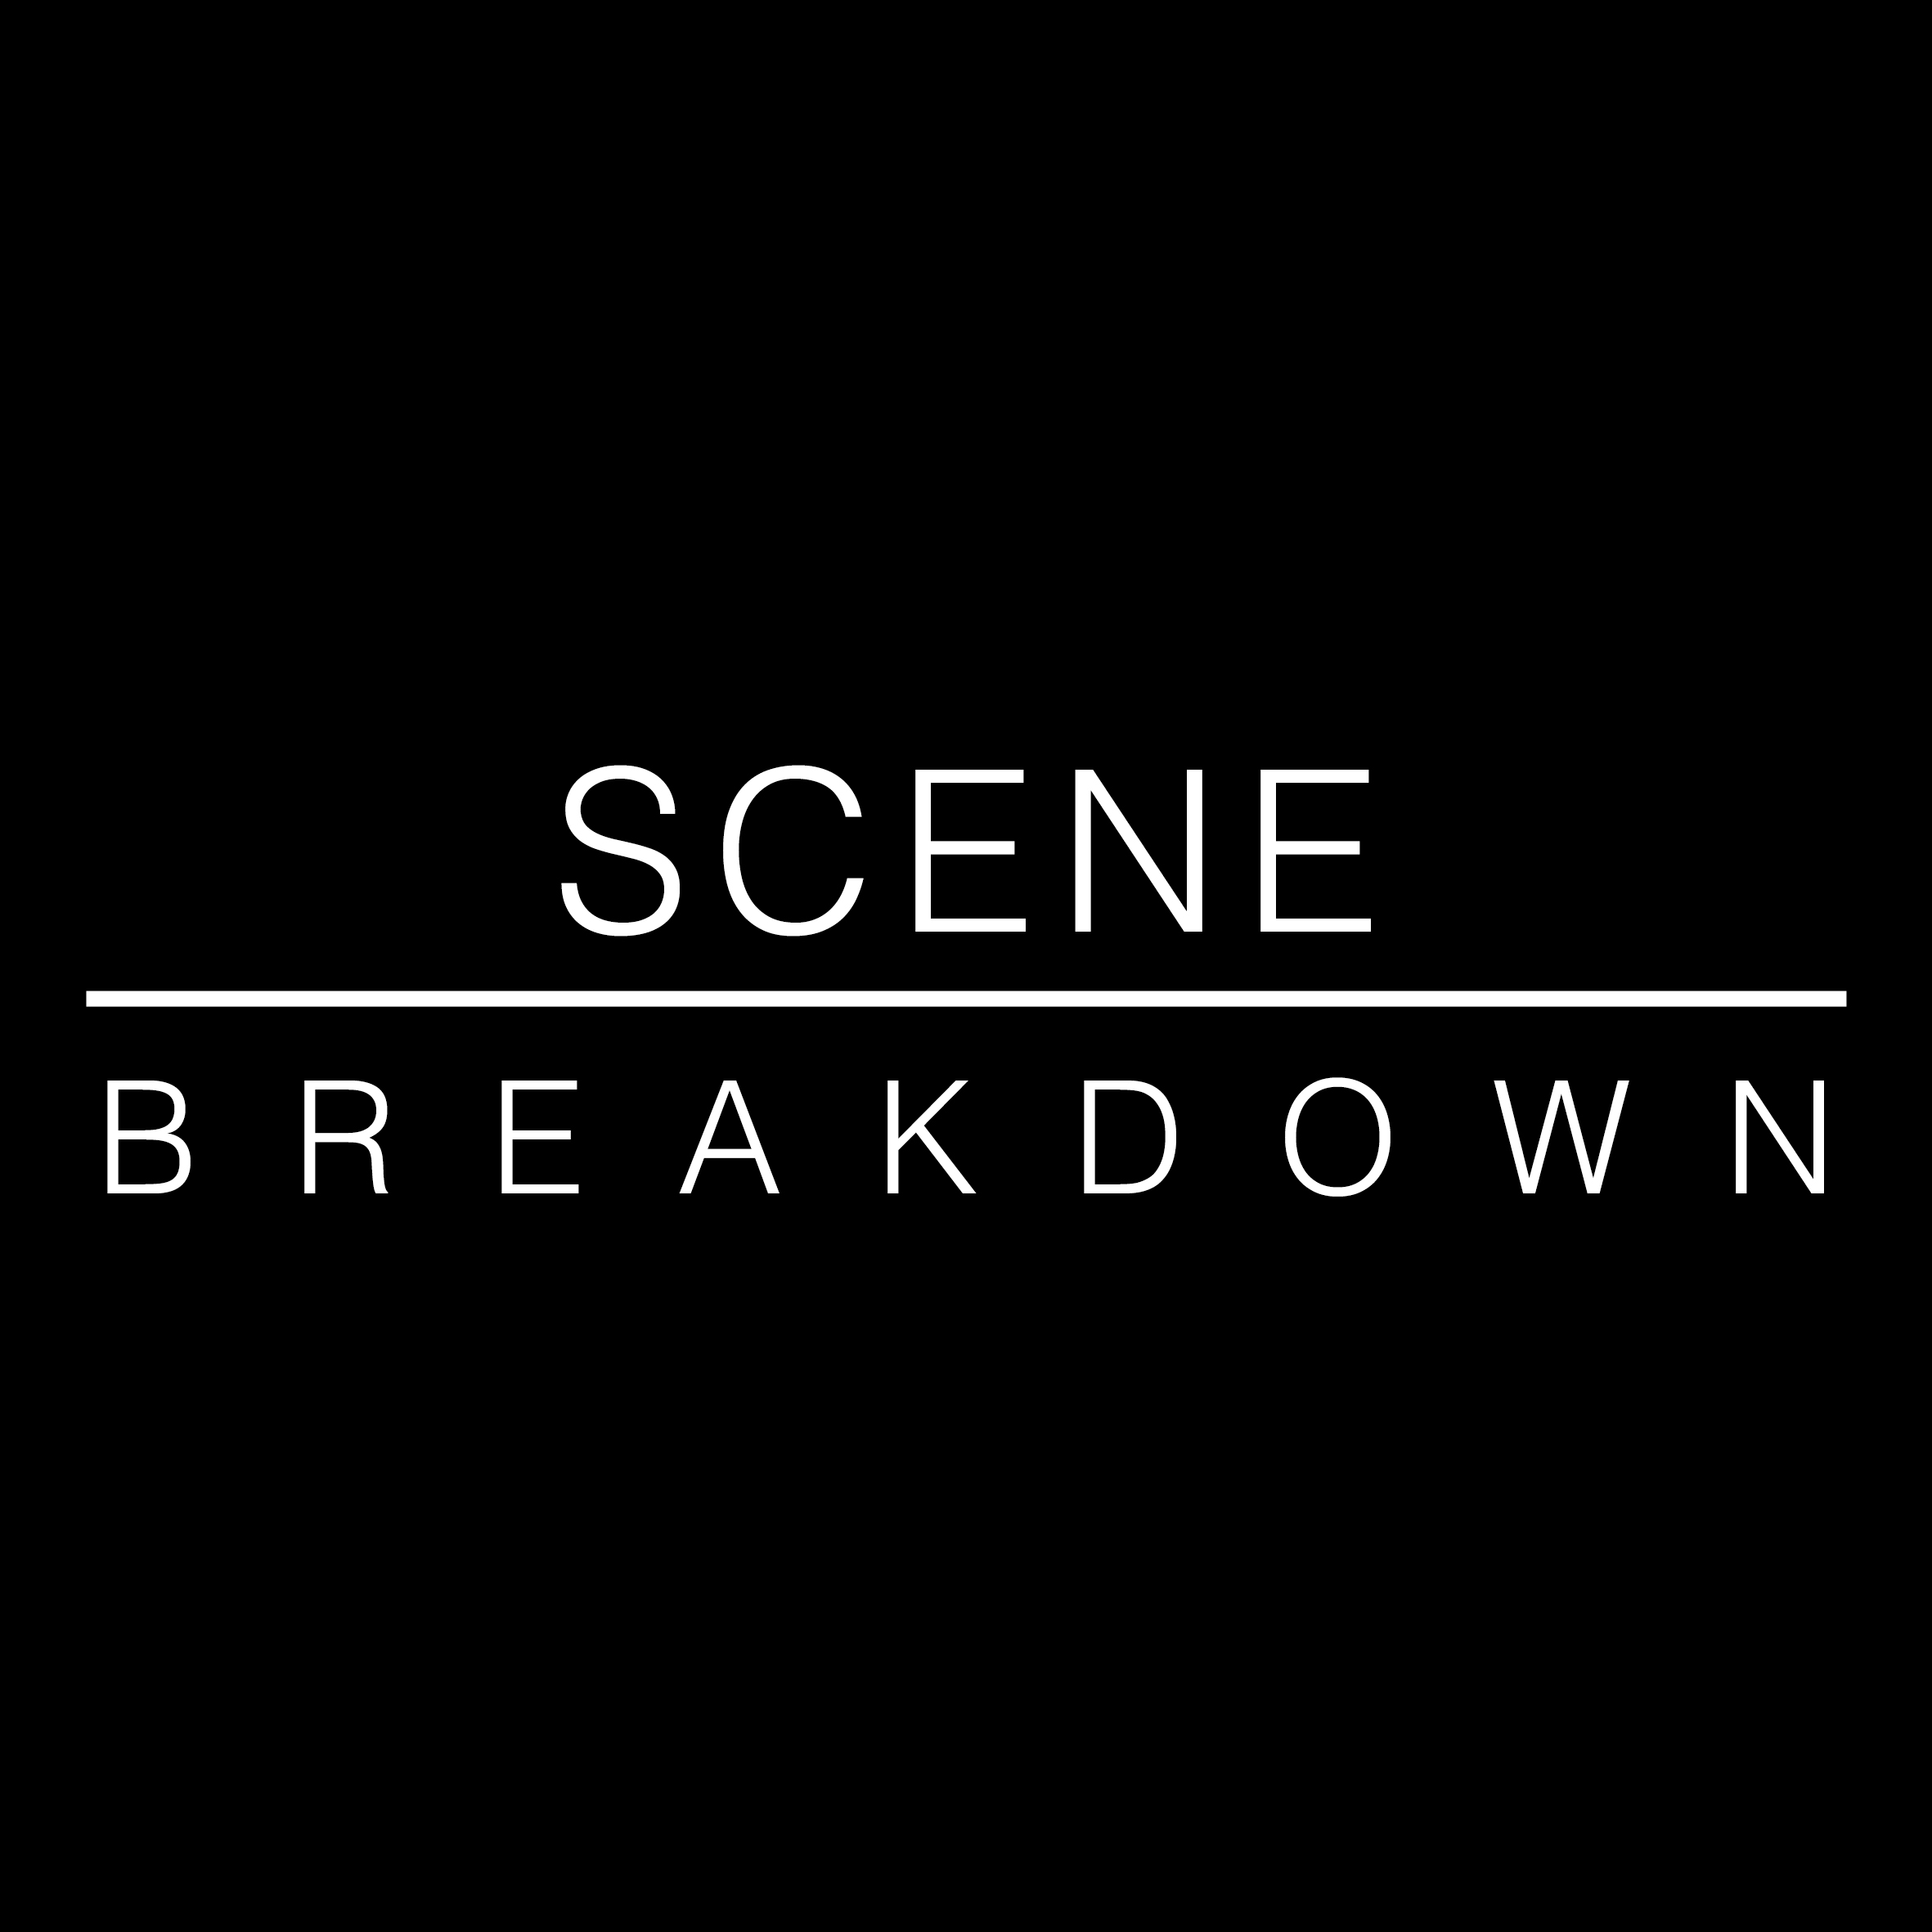 Scene Breakdown Template Sheet Moonhead Films